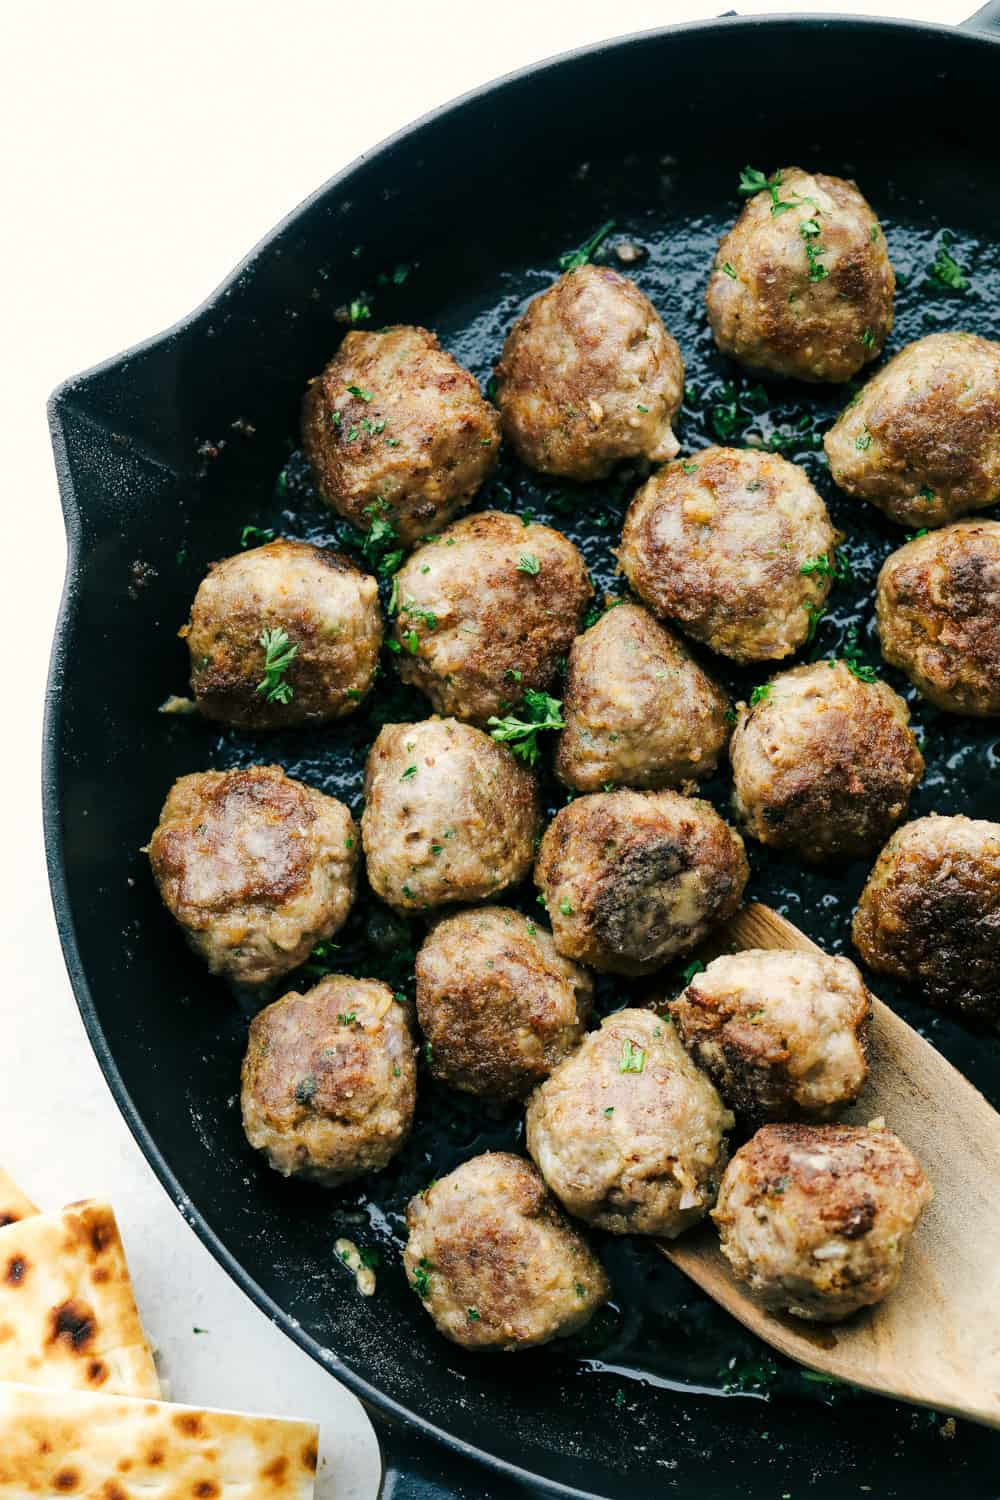 Meatballs in the skillet browned and ready to serve.